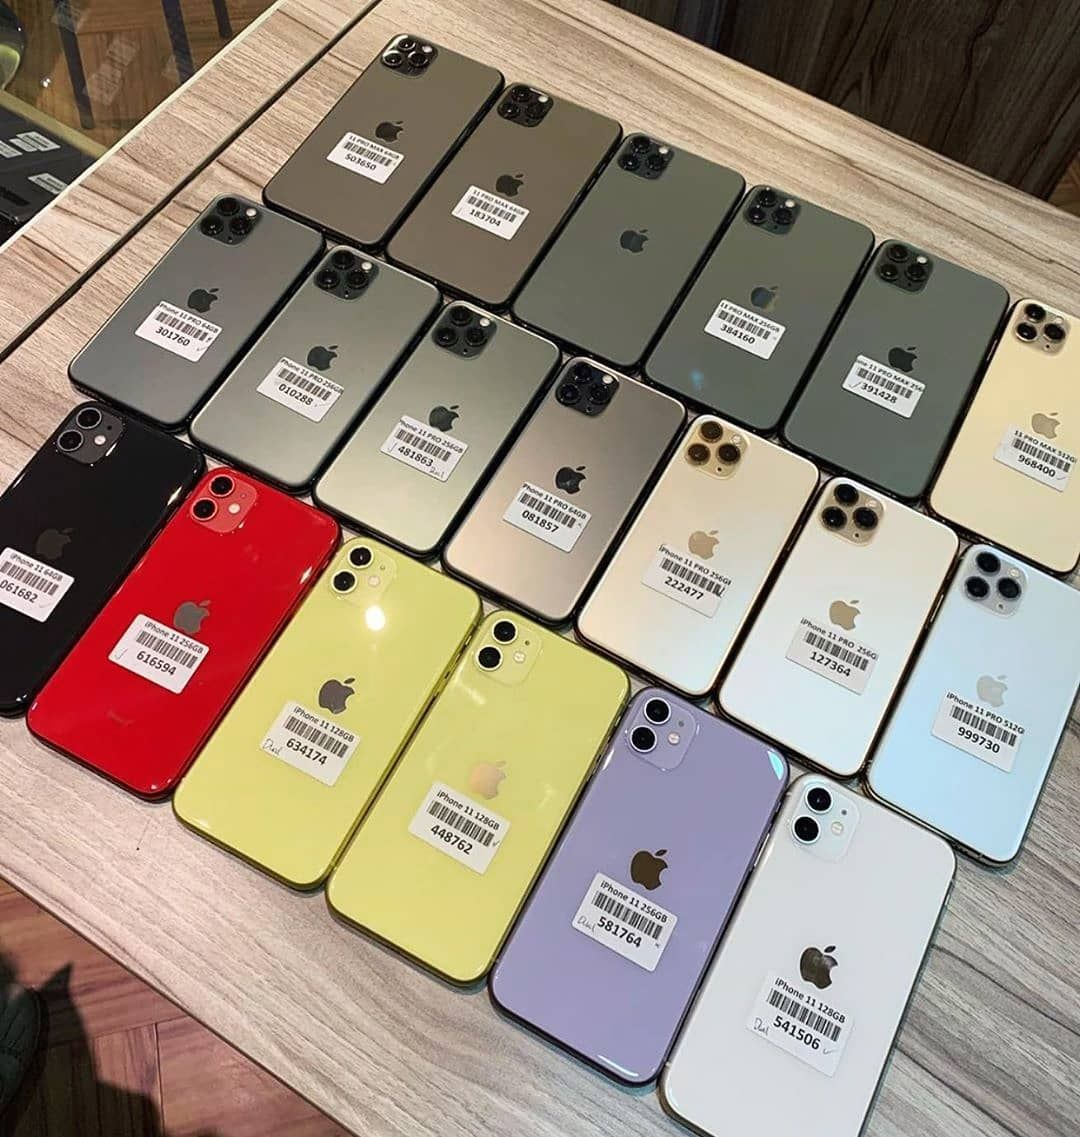 Apple Lifestyle On Instagram Beautiful Iphone Collection Iphone 11 Iphone 11 Pro Choose Your Favorite Model And Color In 2020 Iphone Iphone 11 Apple